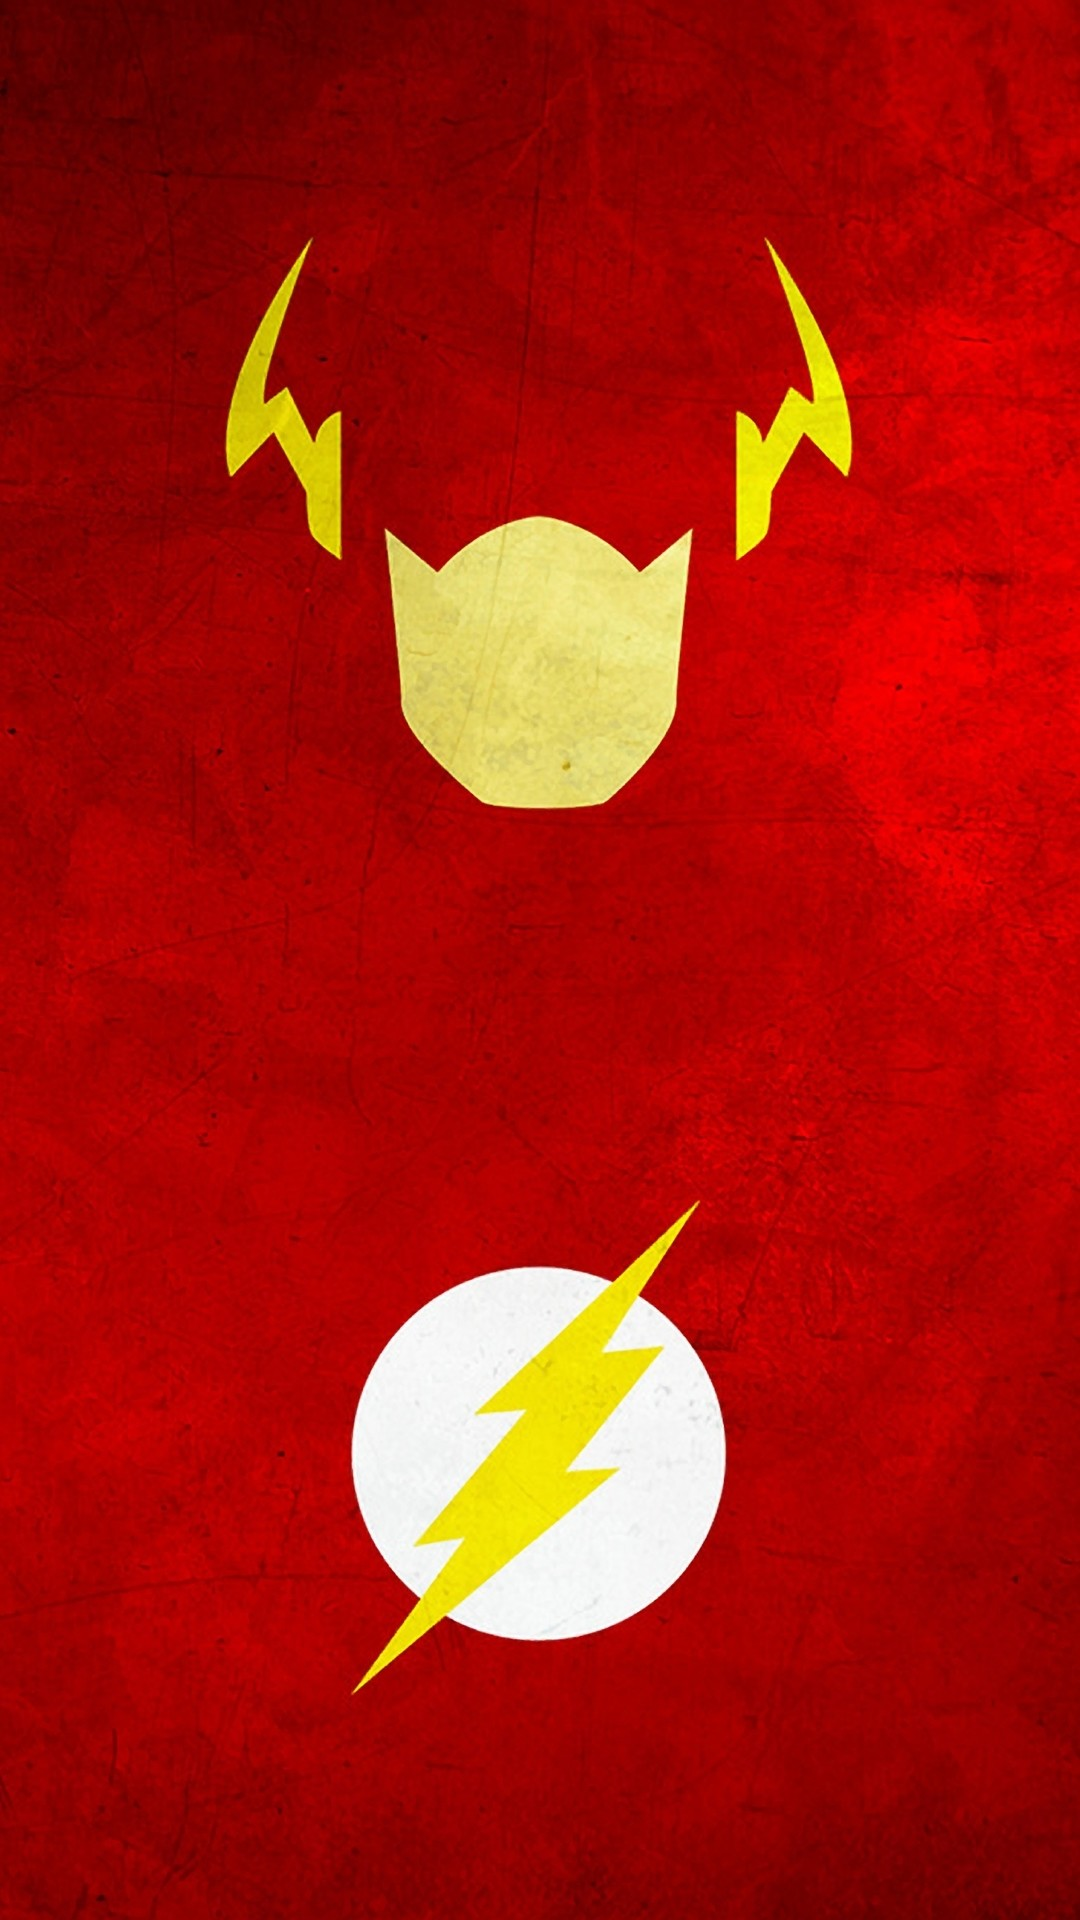 flash symbol wallpaper (66+ images)